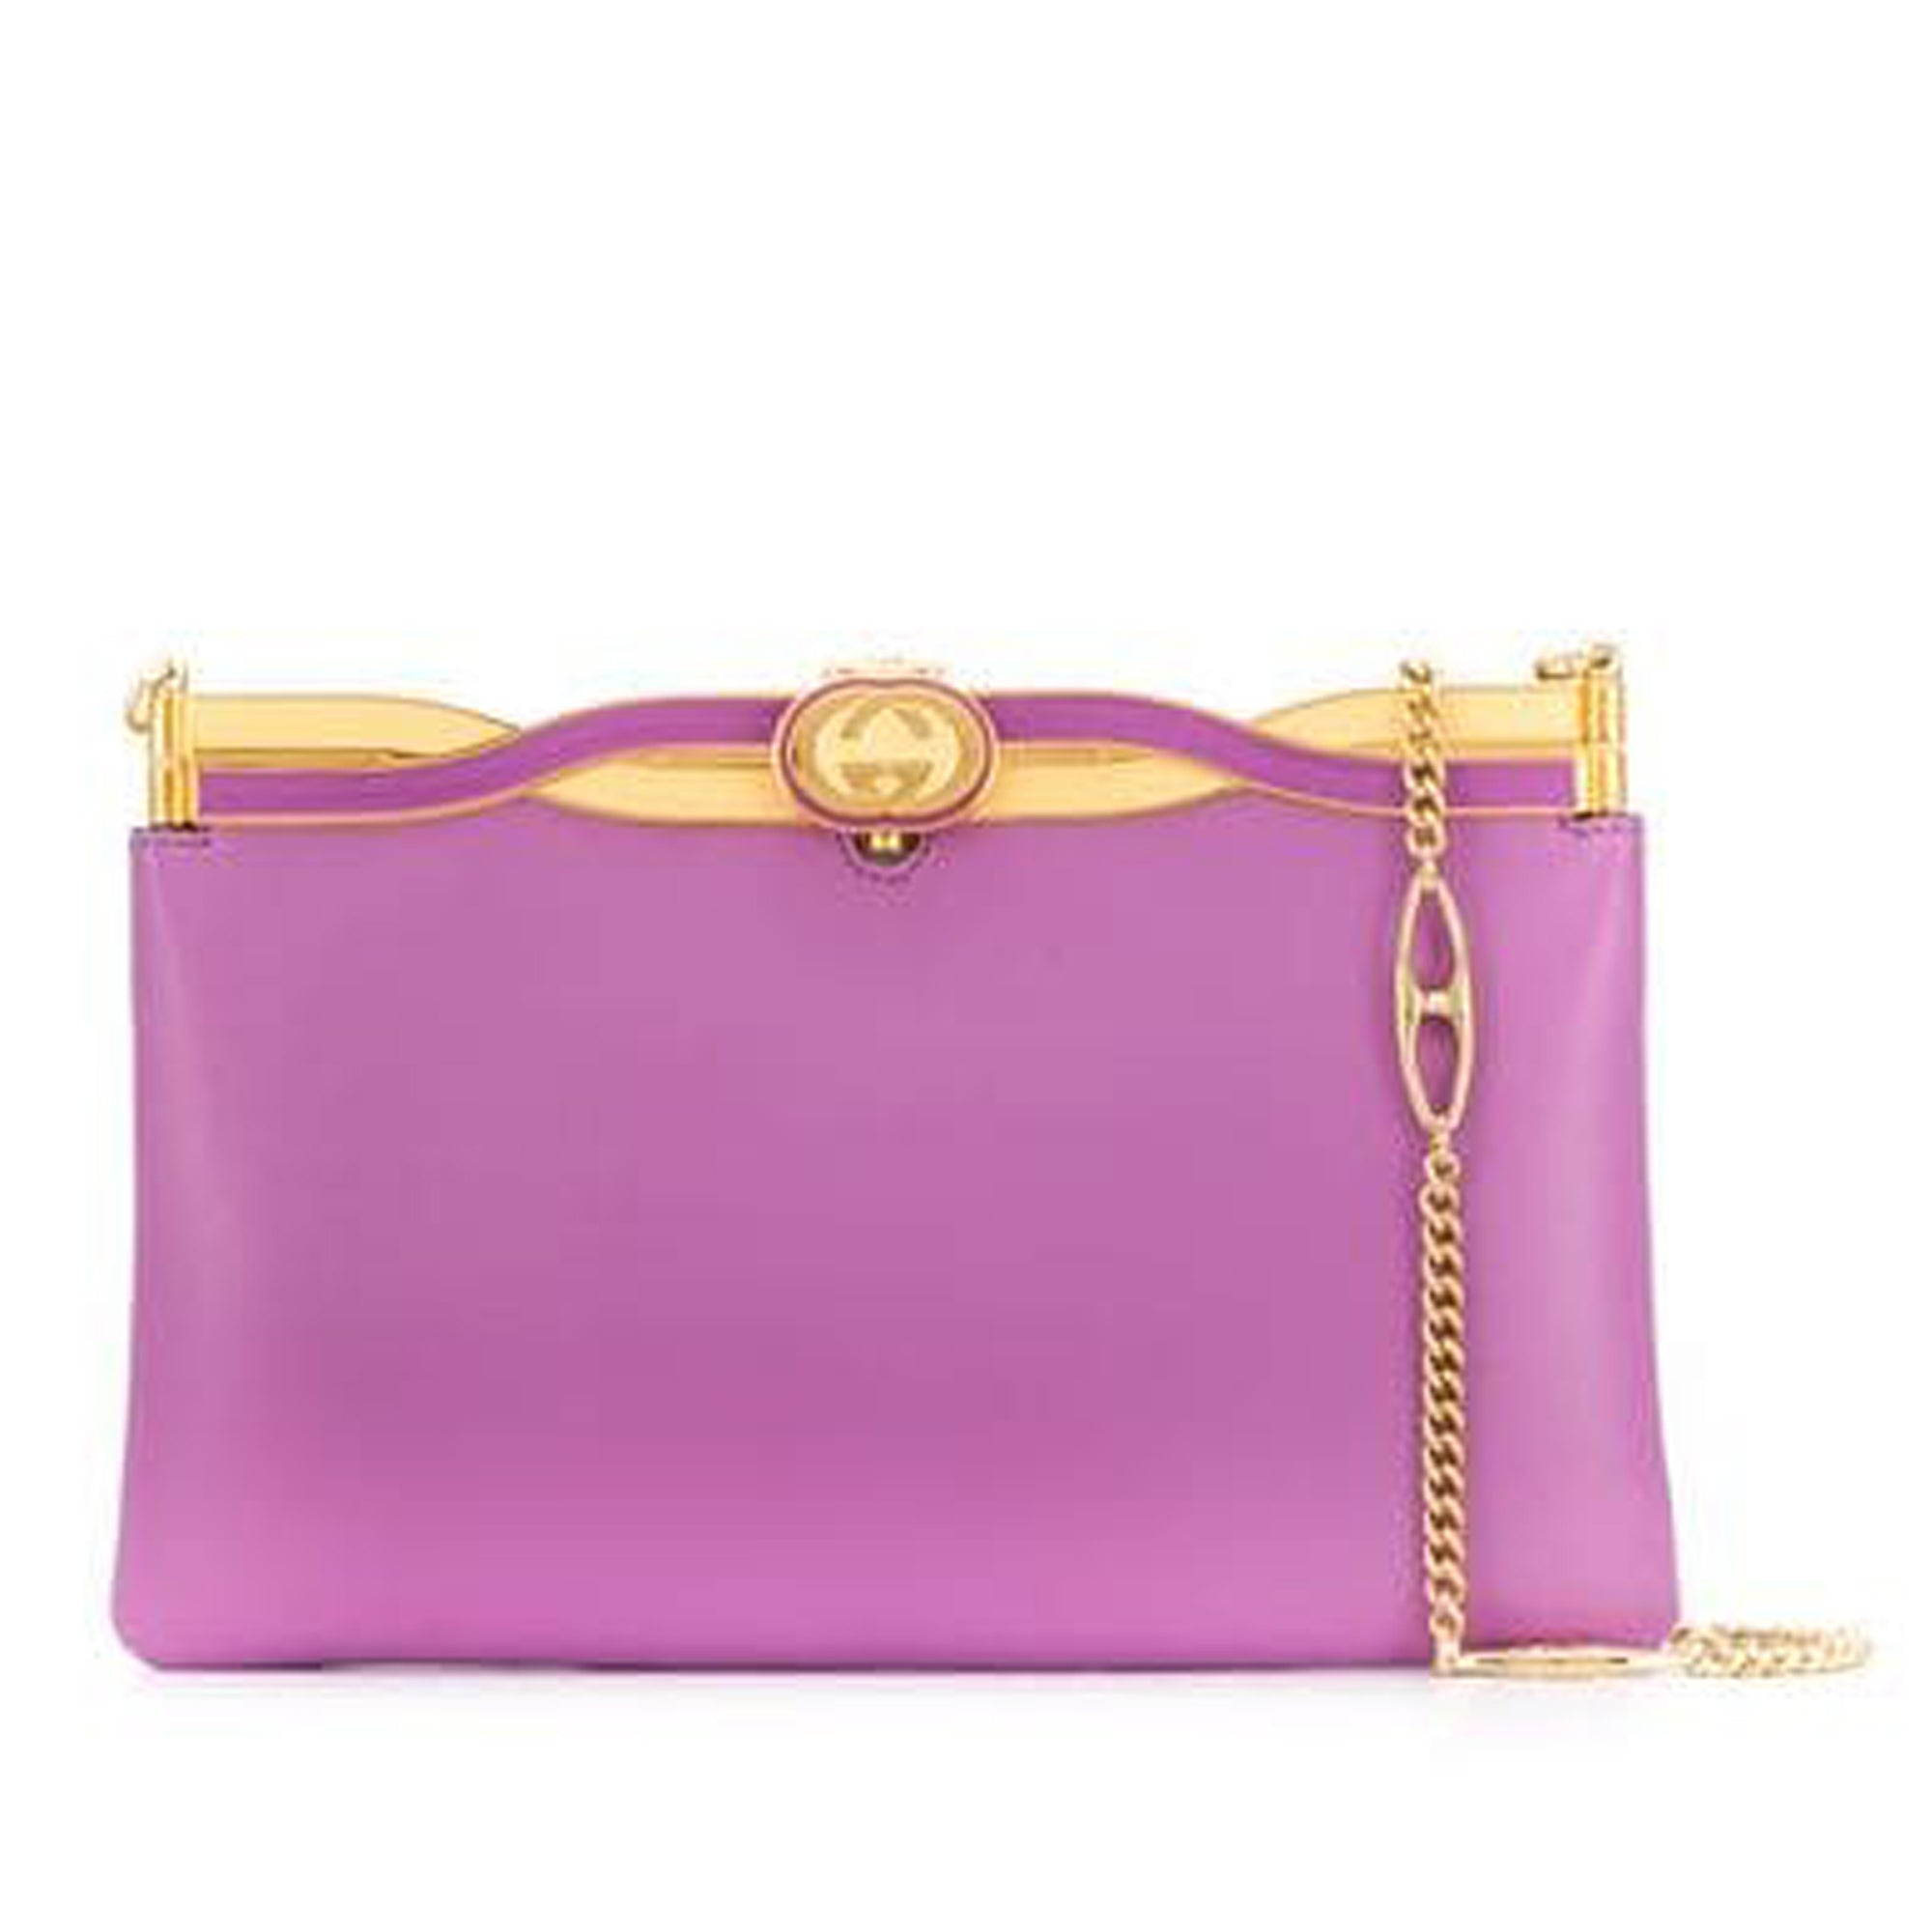 Gucci Purple Broadway Leather Evening Bag